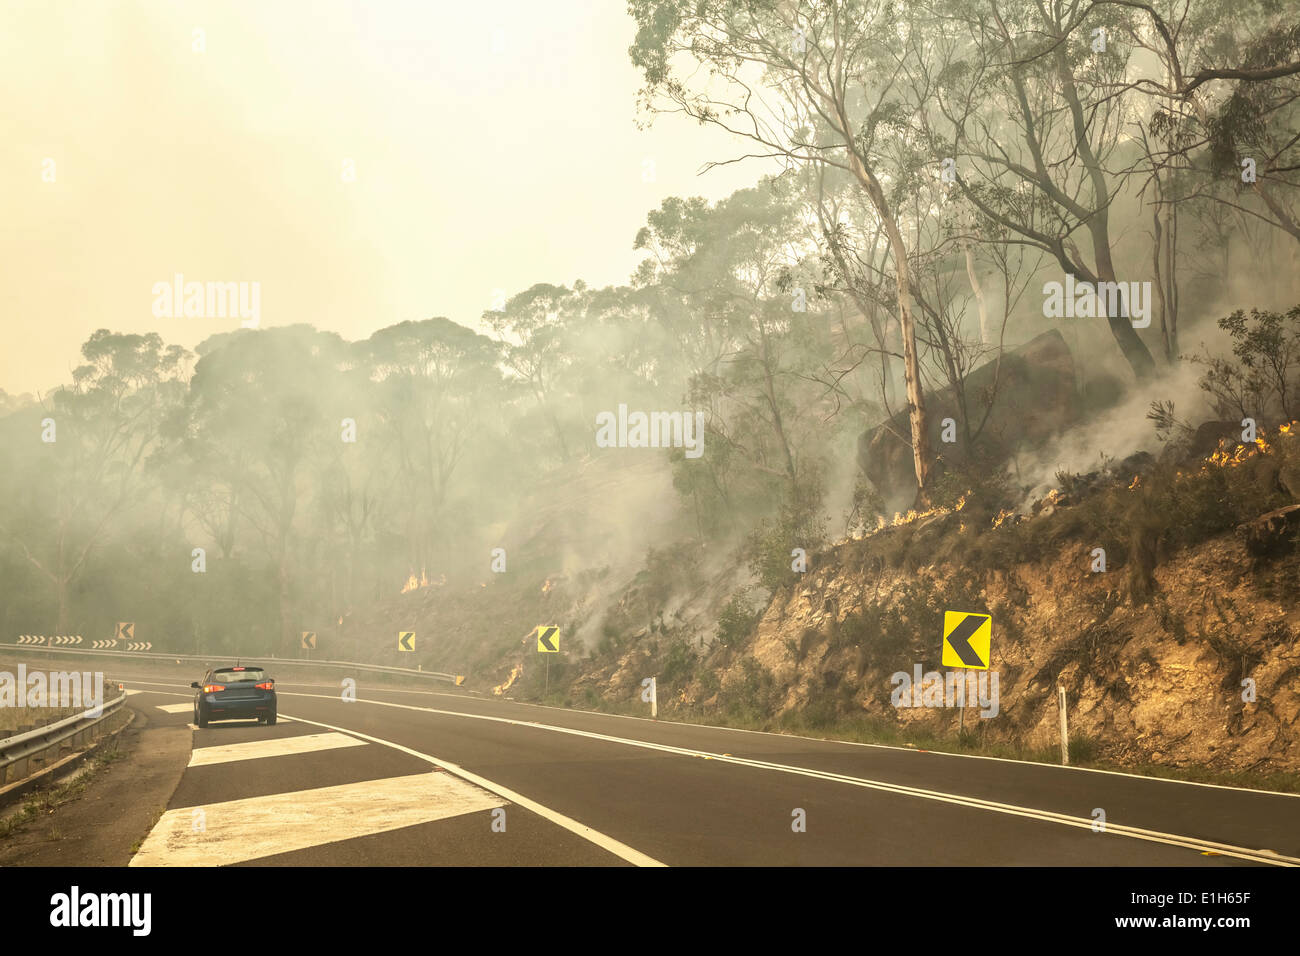 Bush fire and highway, New South Wales, Australia - Stock Image